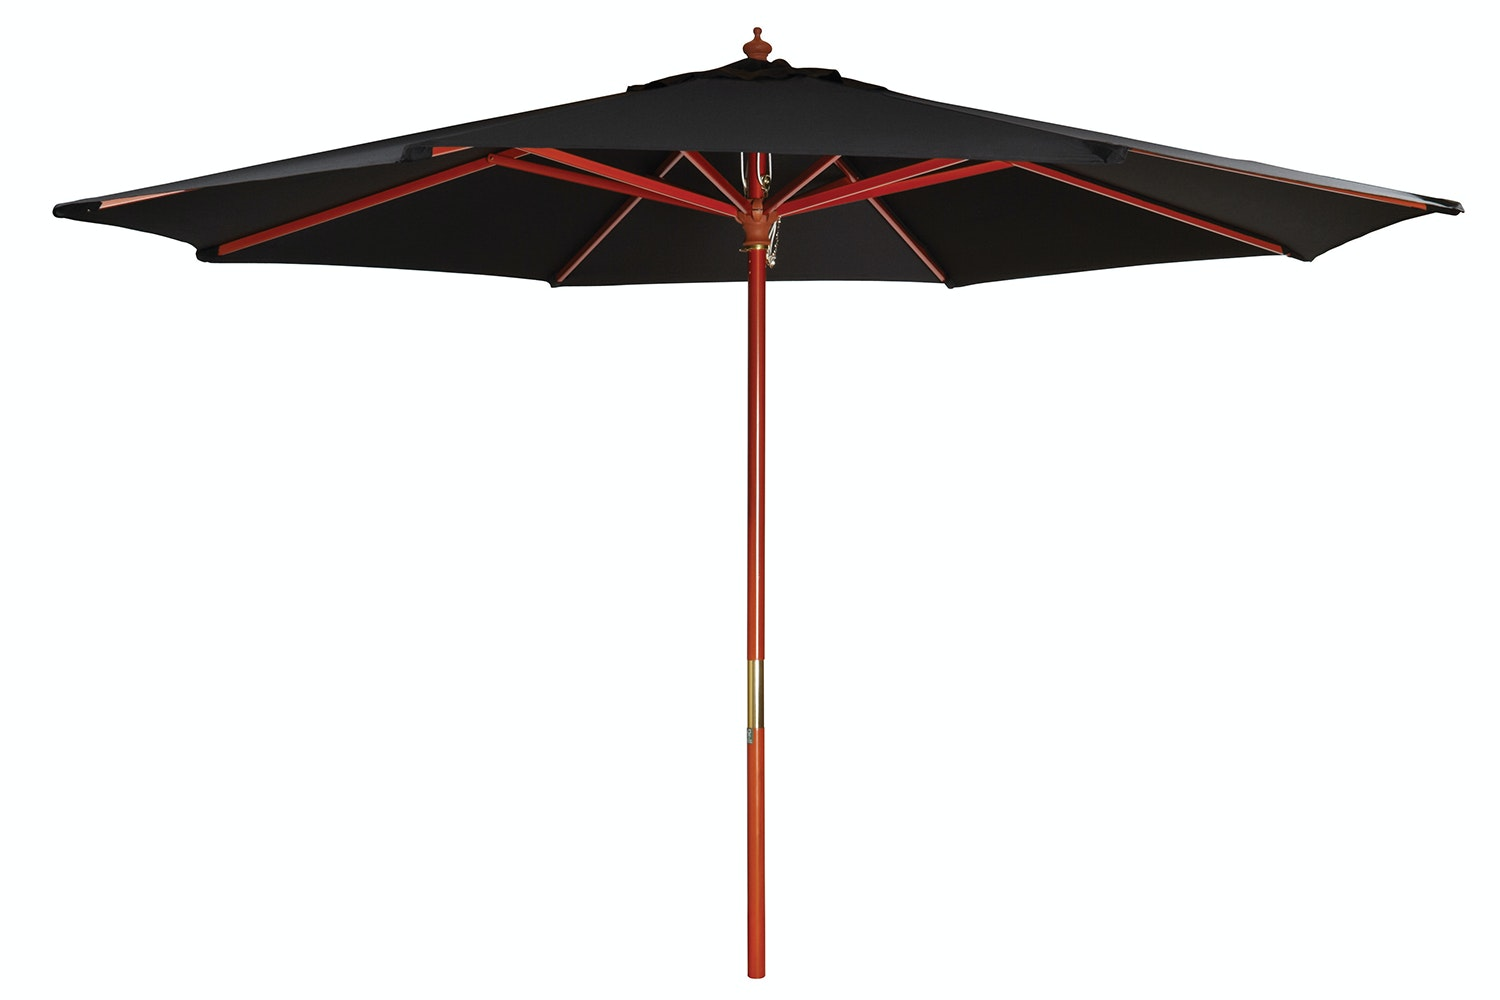 Kosmo 3.5m  Outdoor Umbrella - Black - Peros